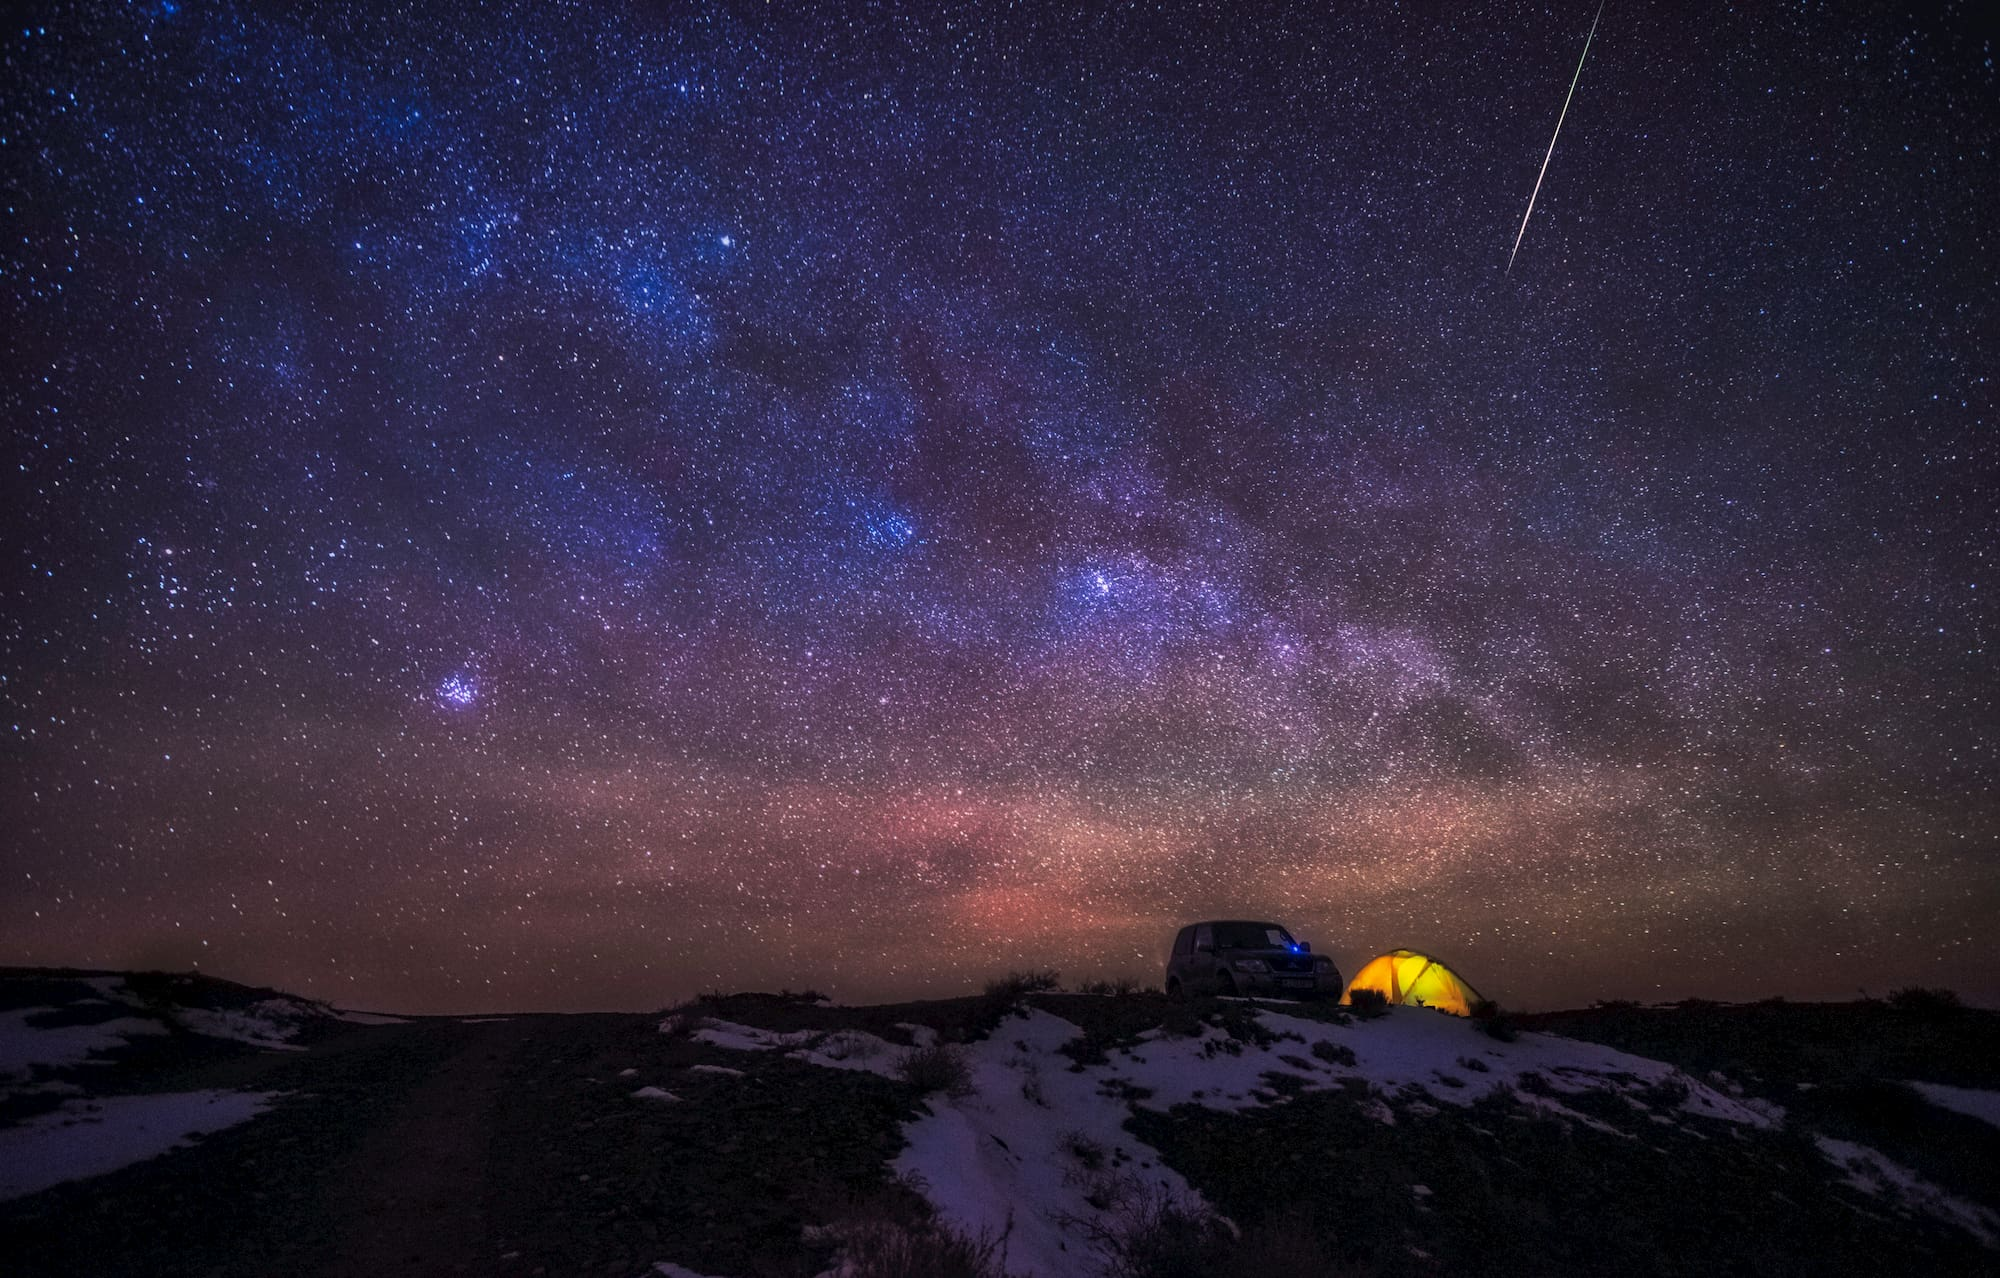 Yellow tent lit up under a purple night sky full of stars and a shooting star.